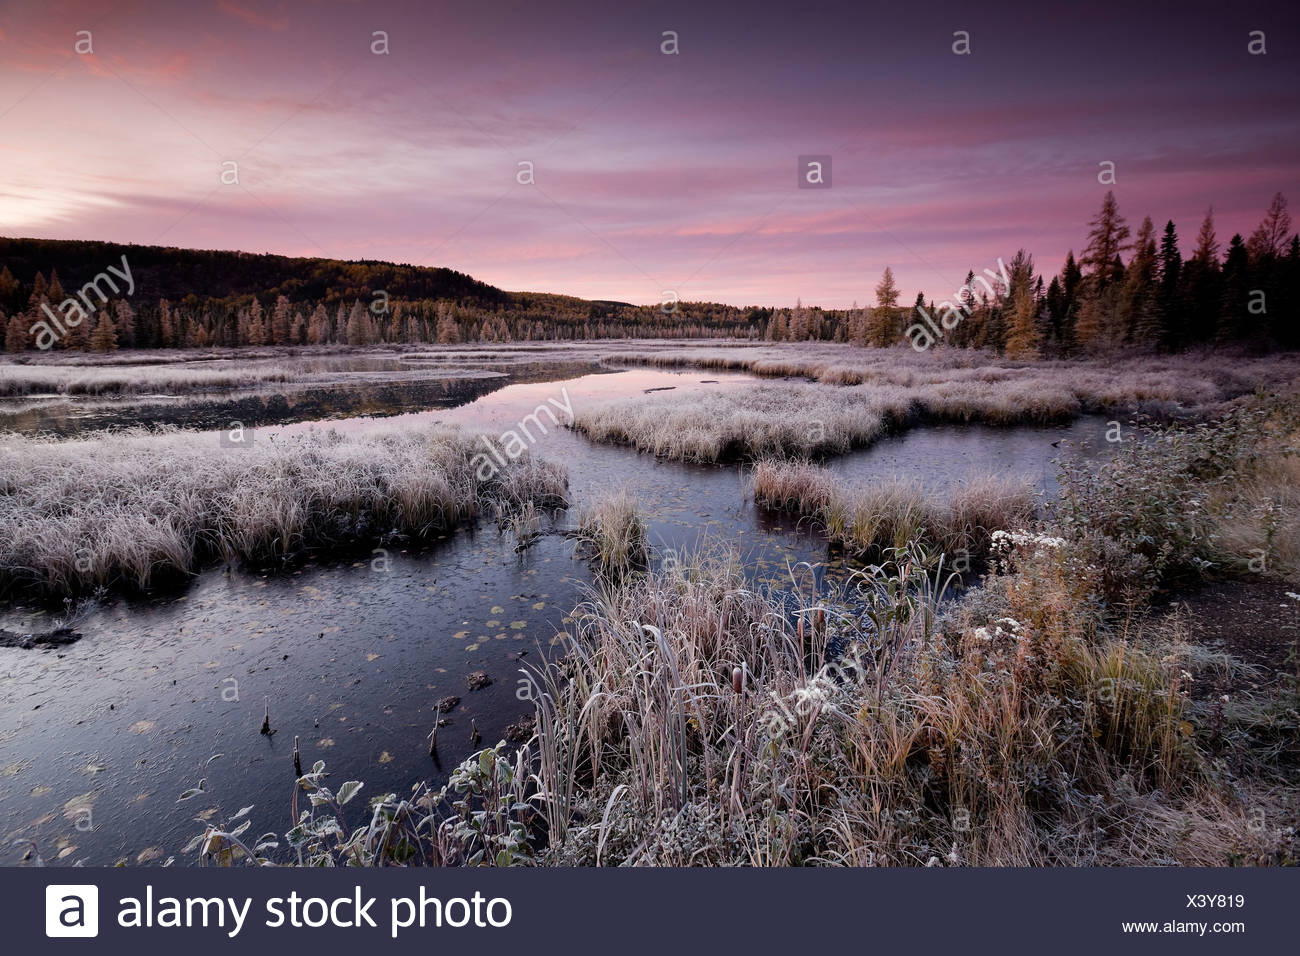 Pink skies first-light frosty Autumn morning - Stock Image